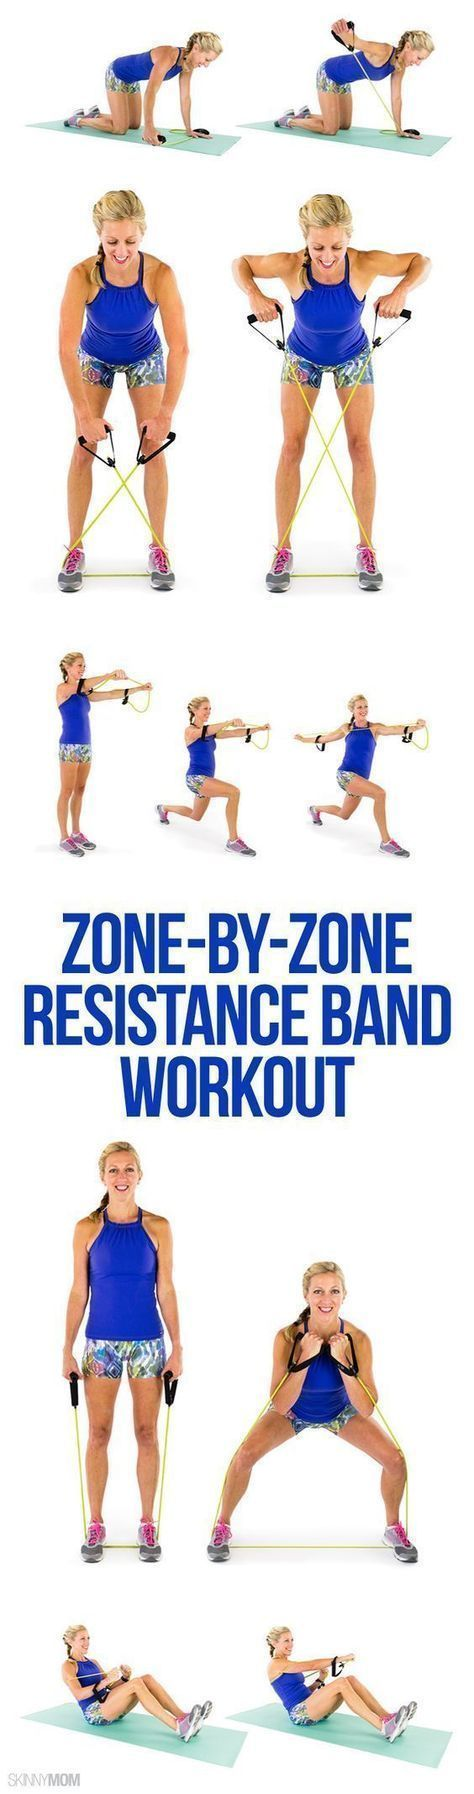 Resistance band workout find more relevant stuff: victoriajohnson.wordpress.com #resistancebands